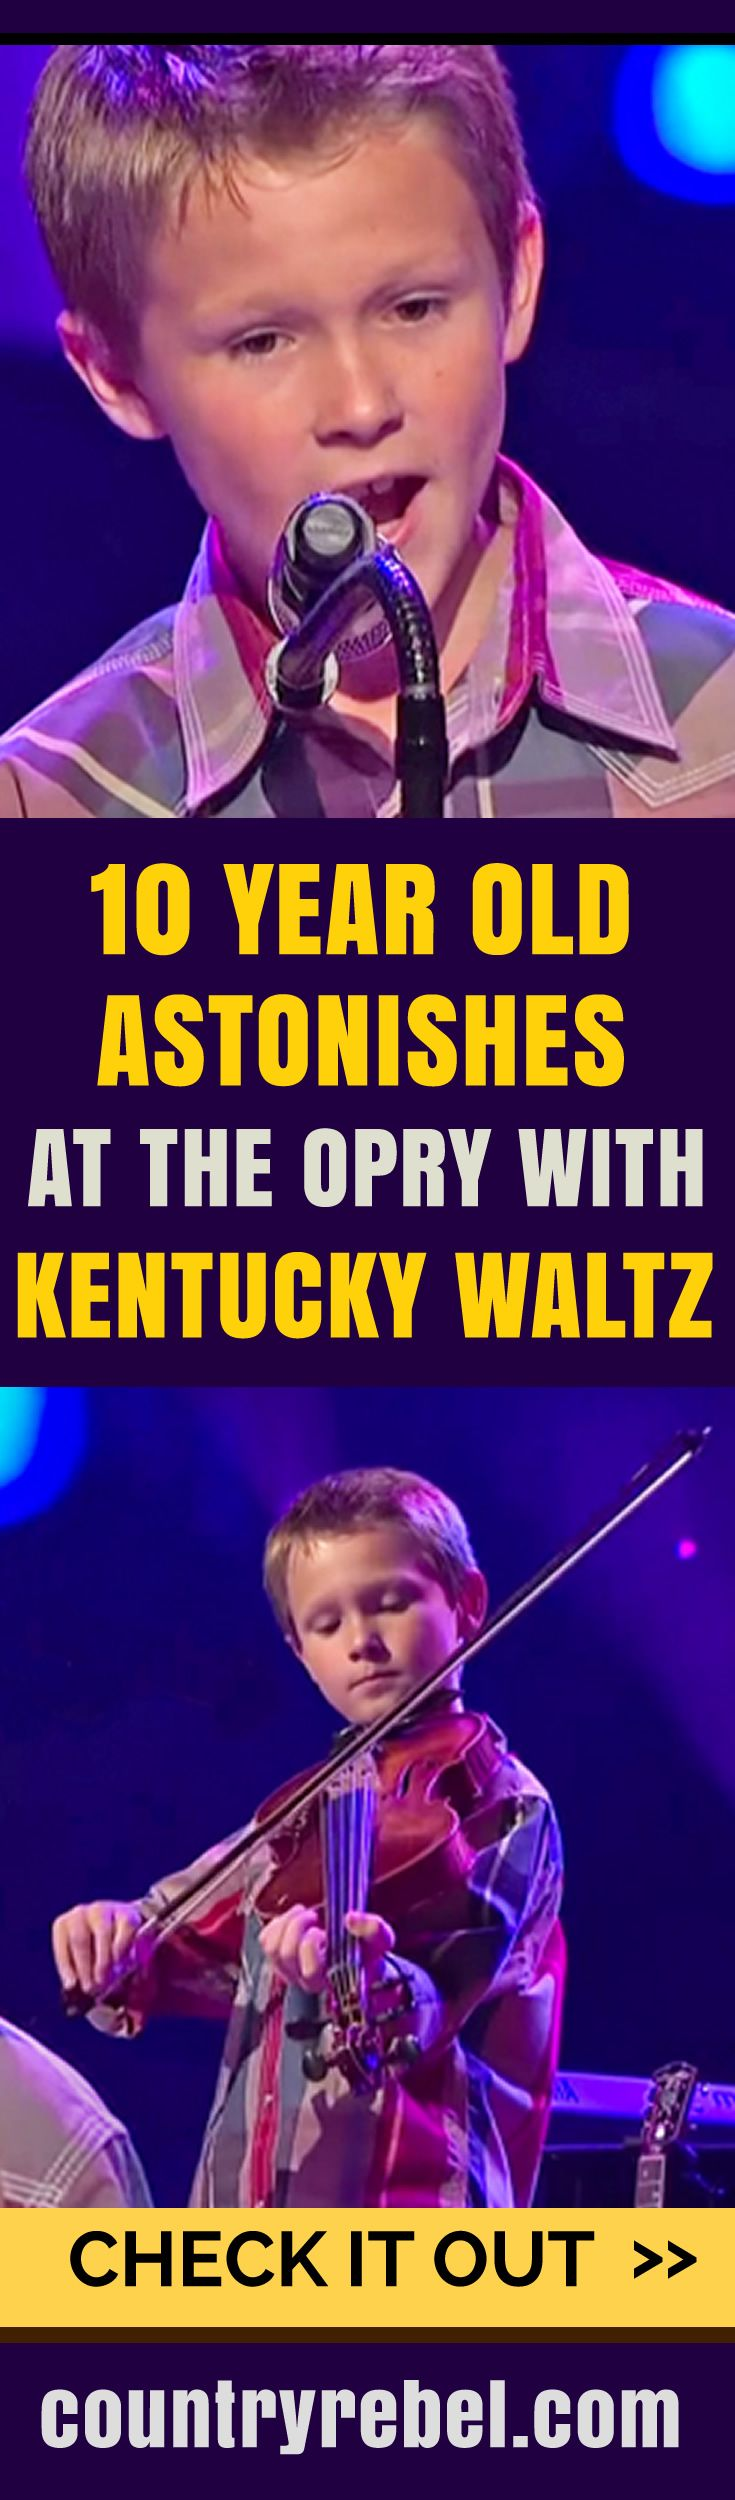 Country music news 10 year old astonishes at the grand ole opry with kentucky waltz